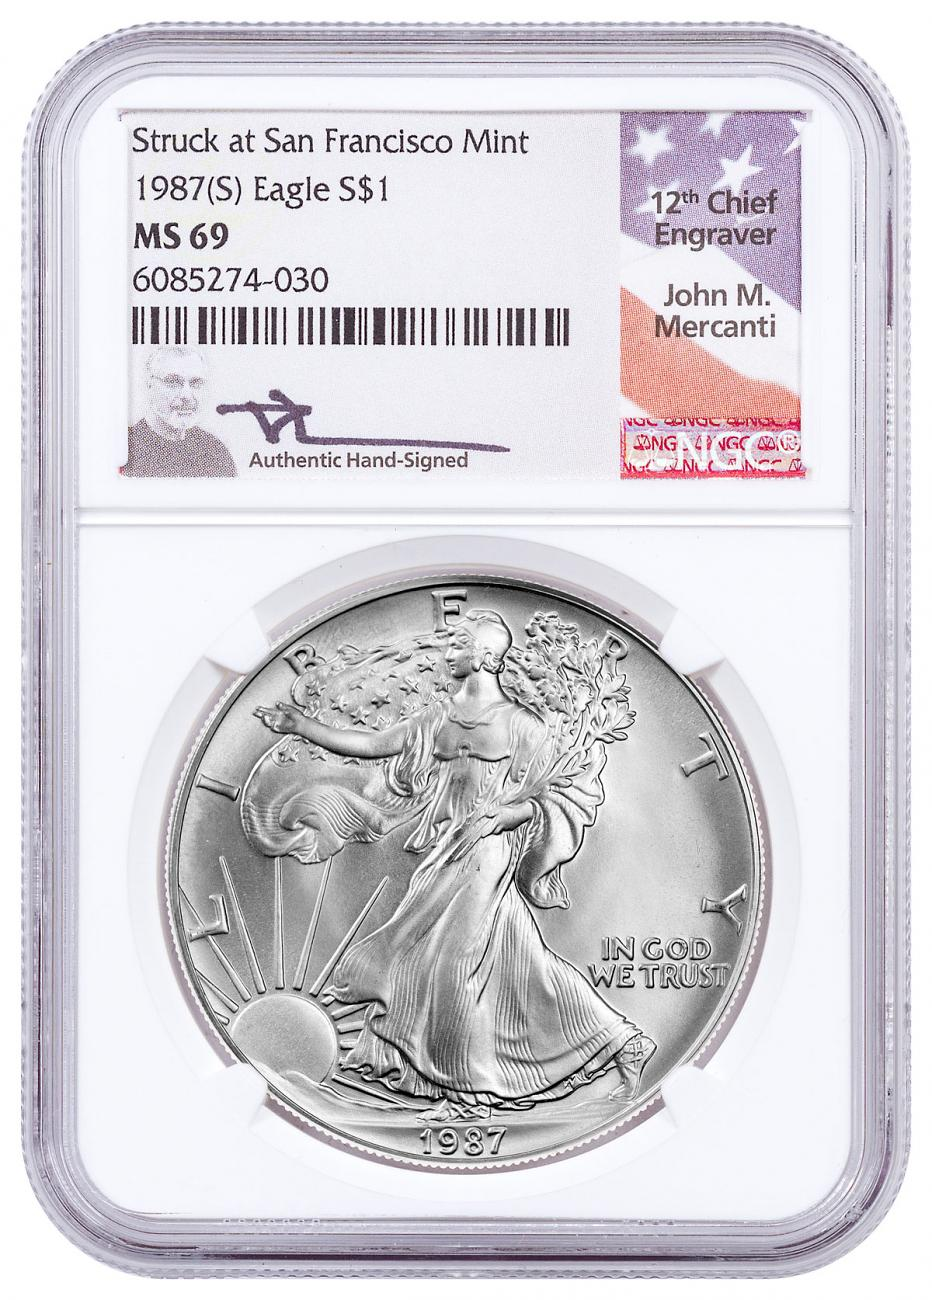 1987-(S) American Silver Eagle Struck at San Francisco Mint NGC MS69 Mercanti Signed Flag Label